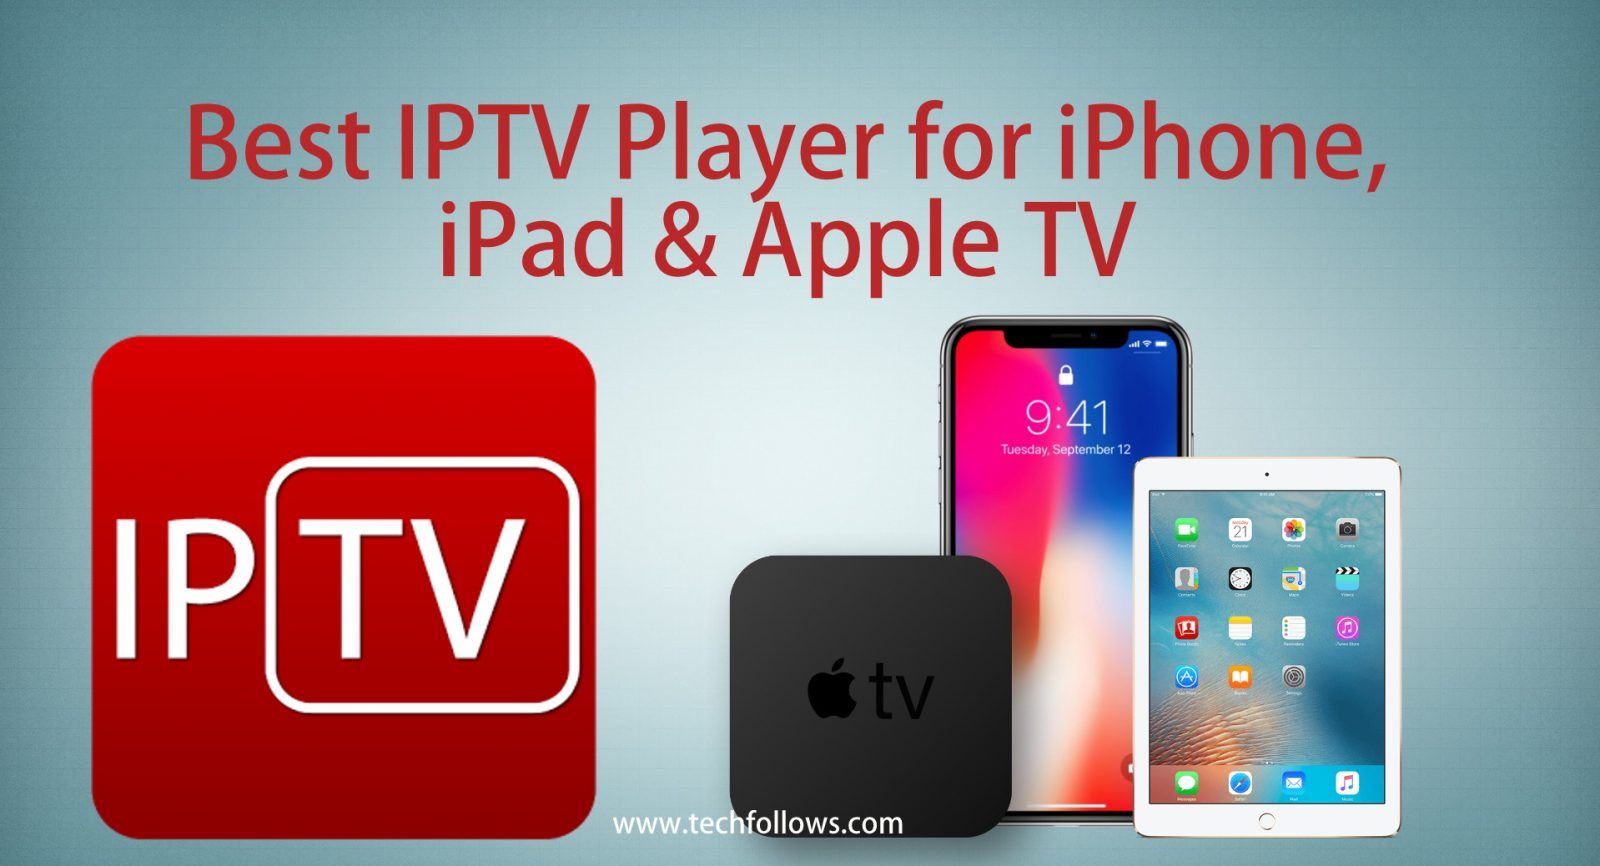 Best IPTV Player for iPhone, iPad and Apple TV in 2019 - Tech Follows